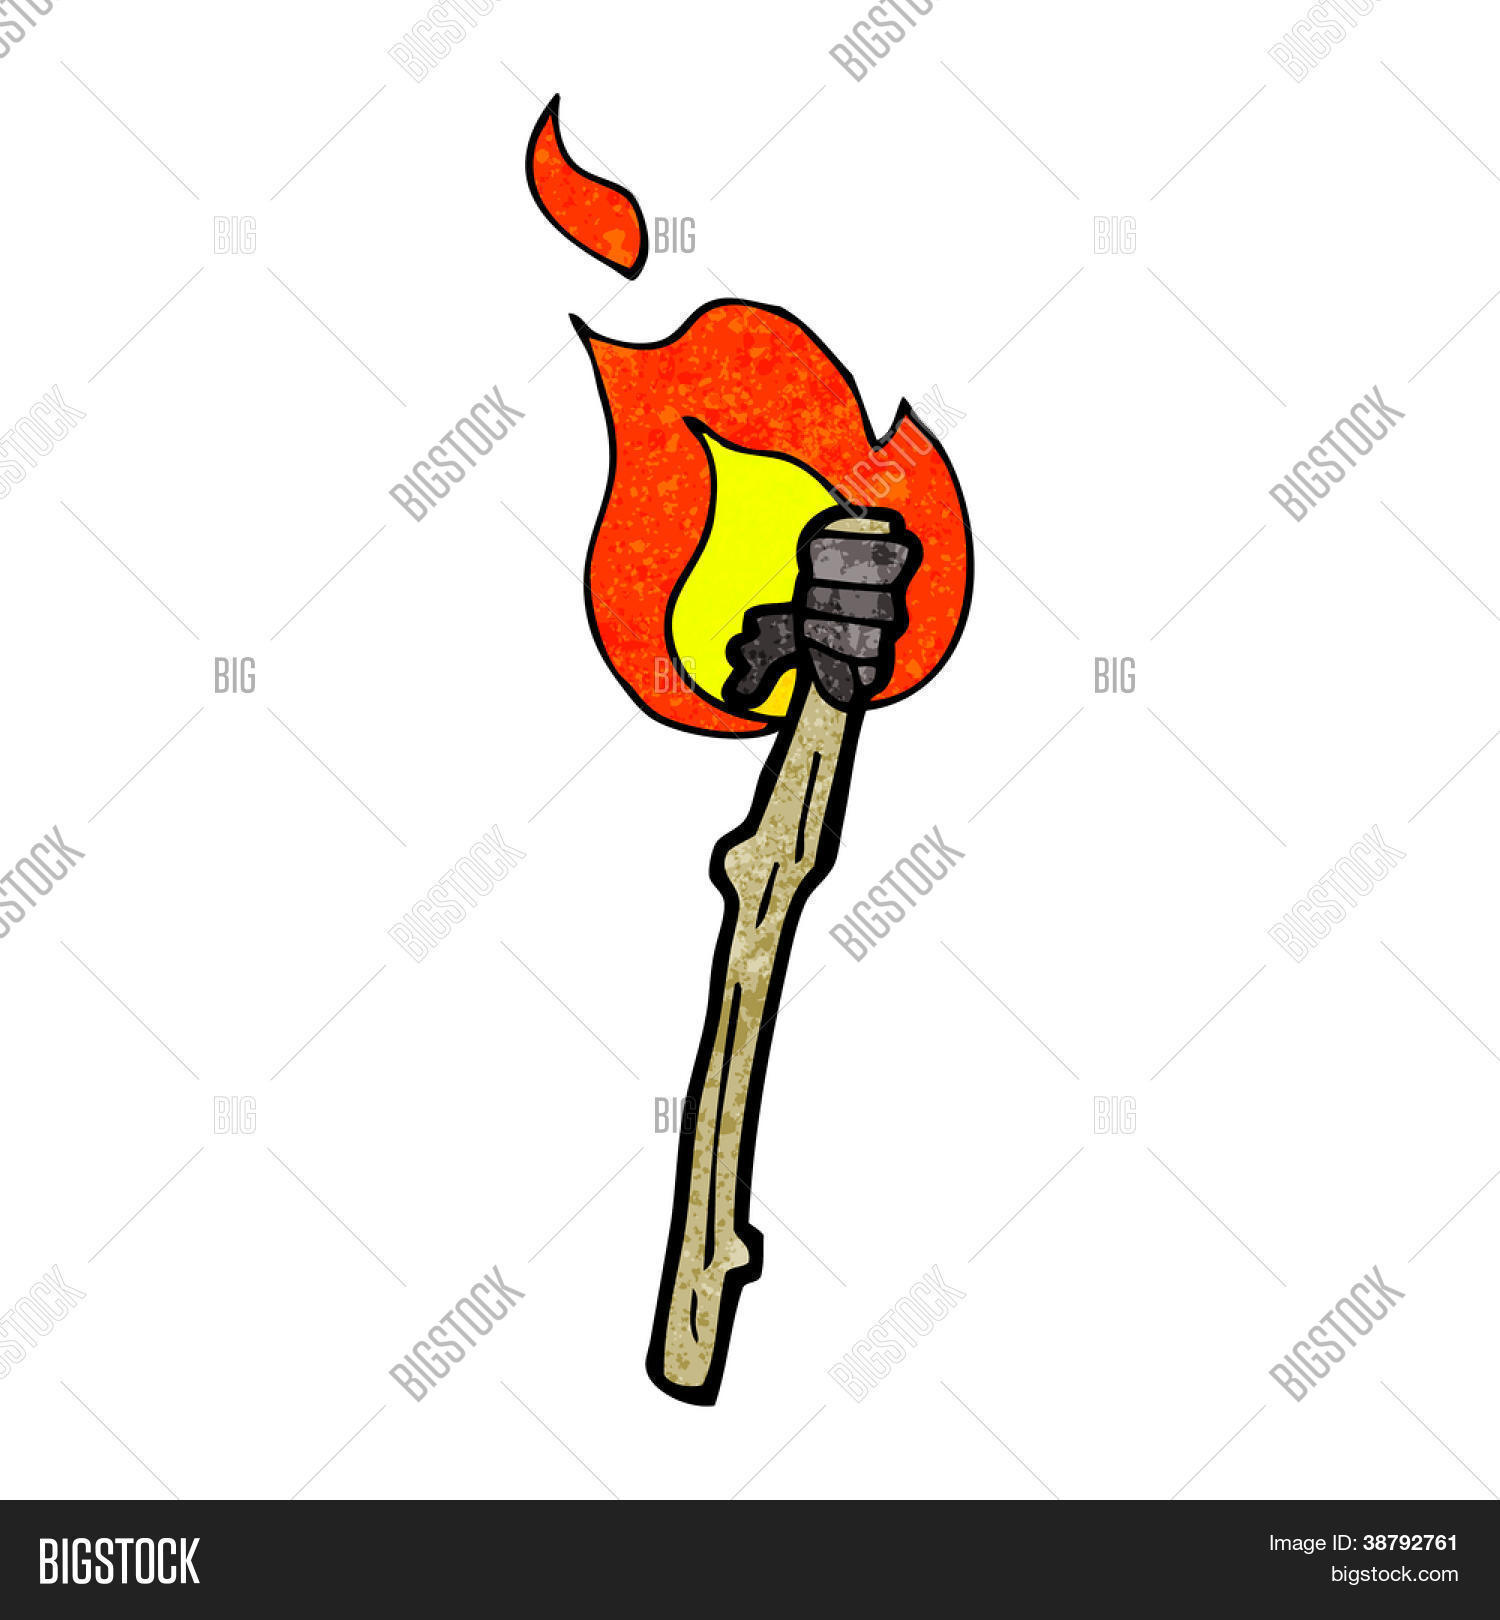 Burning wooden torch png